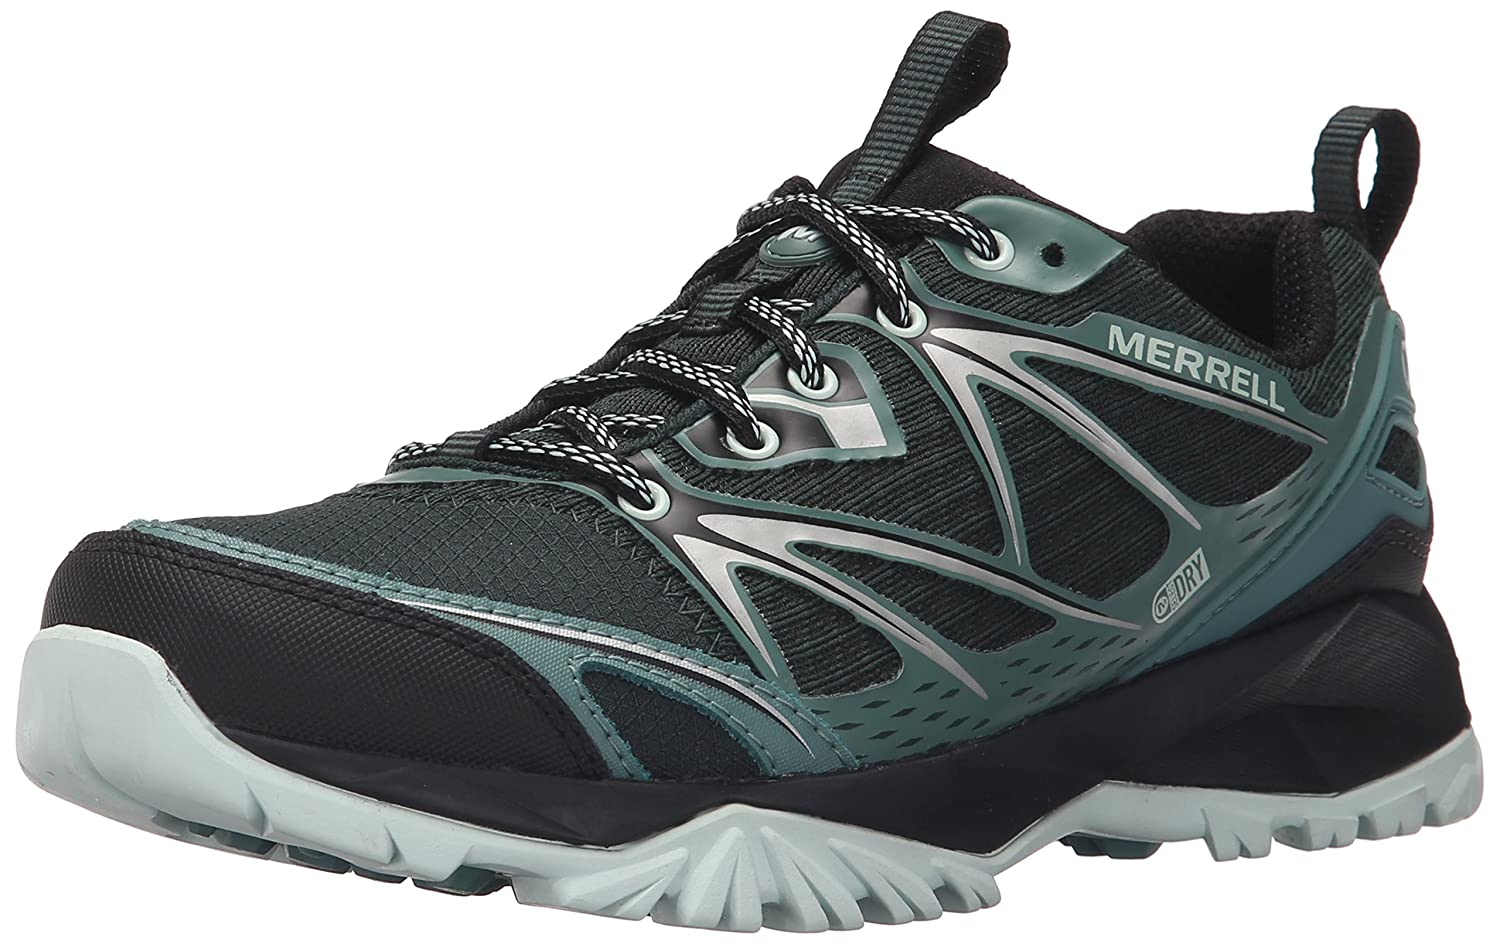 Merrell Capra Bolt Mid Waterproof Hiking Boot Women's Pine